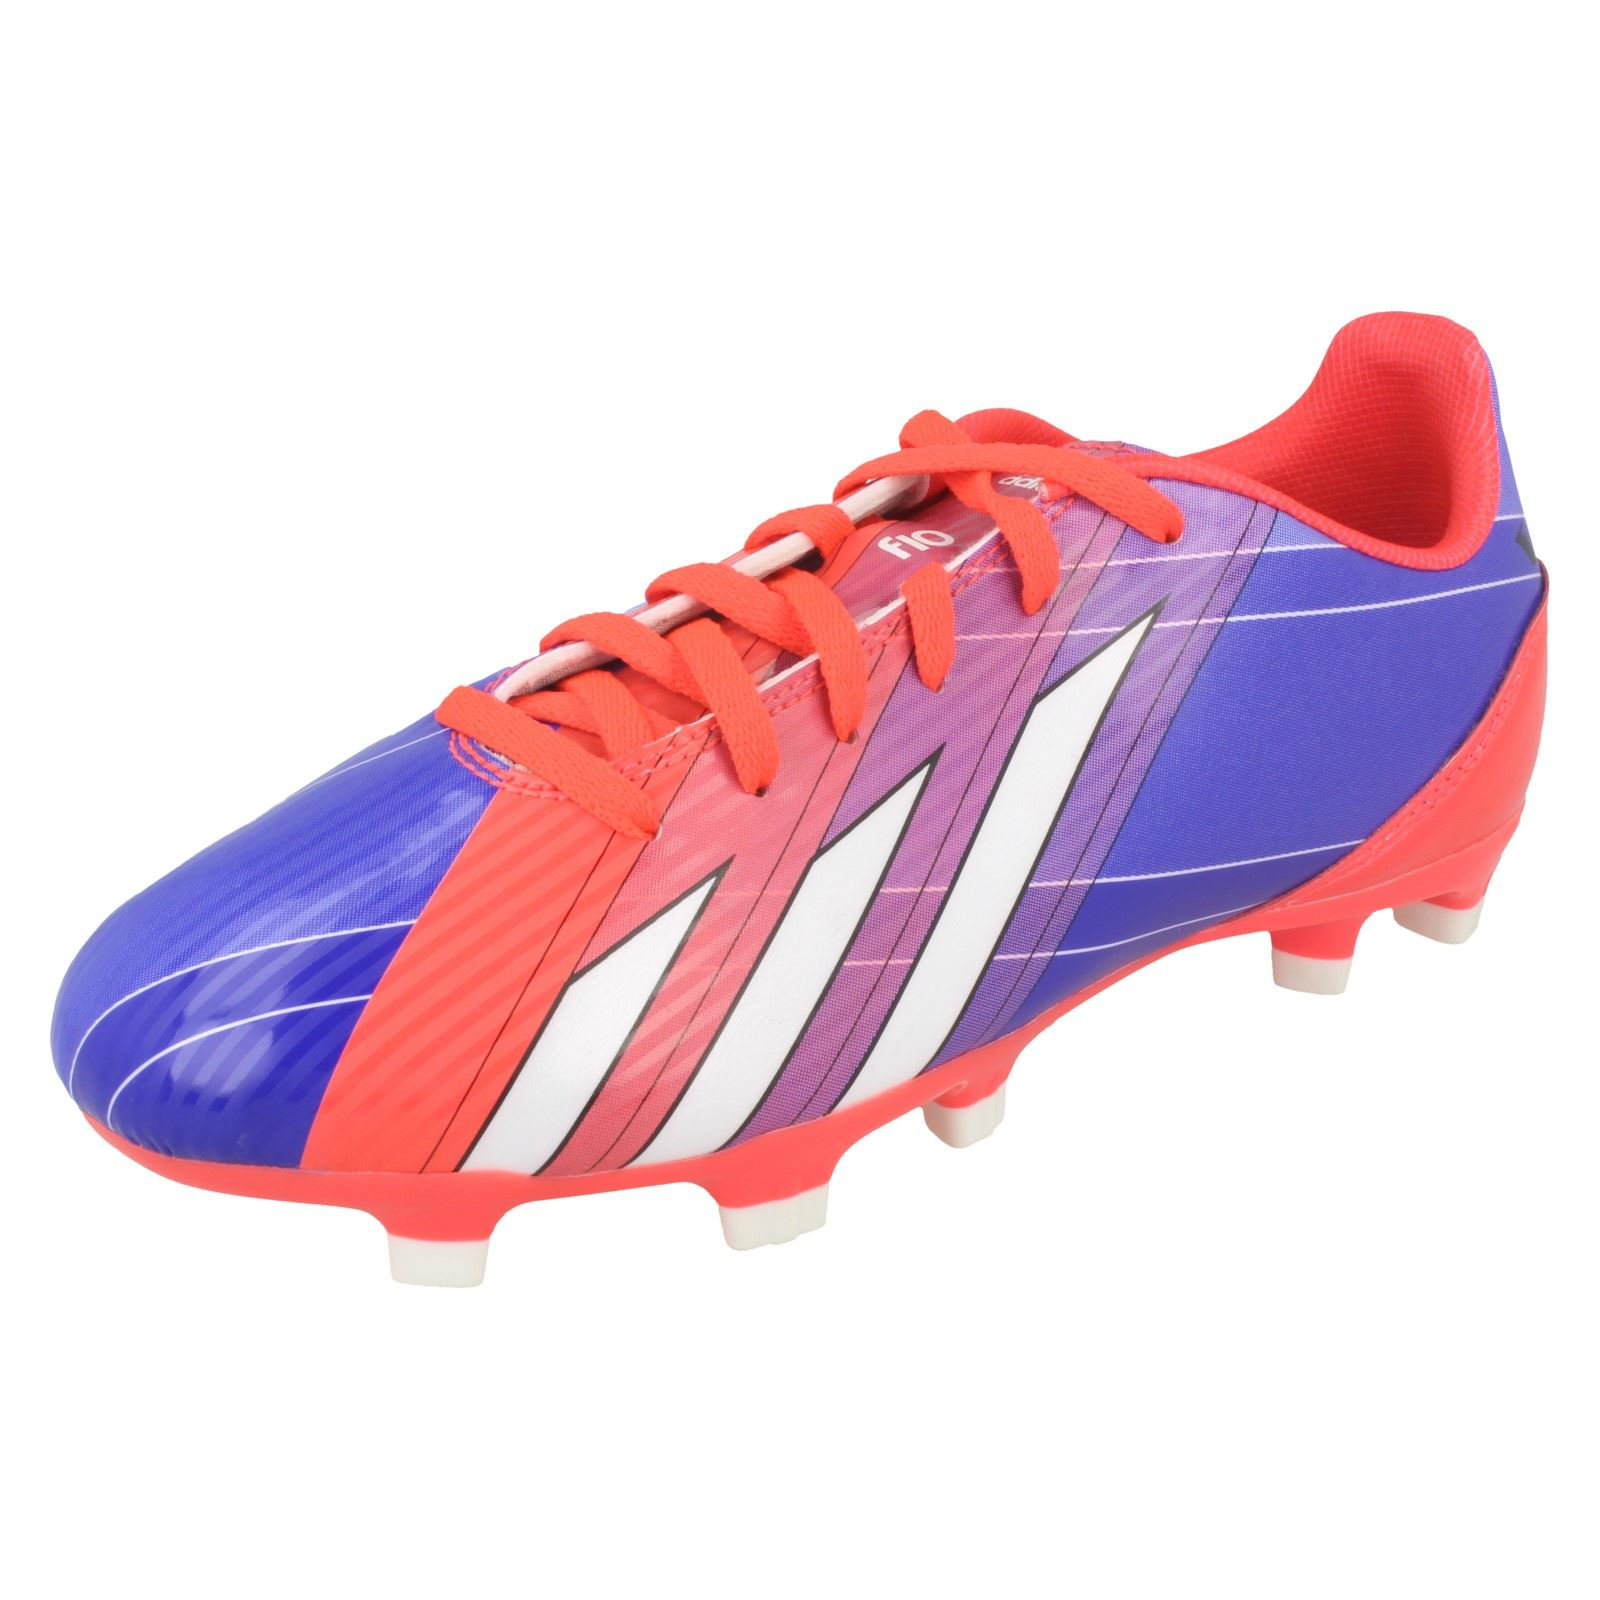 0feb43e338c79 Details about Boys Adidas Lionel Messi Football Boots 'F10 TRX FG J'